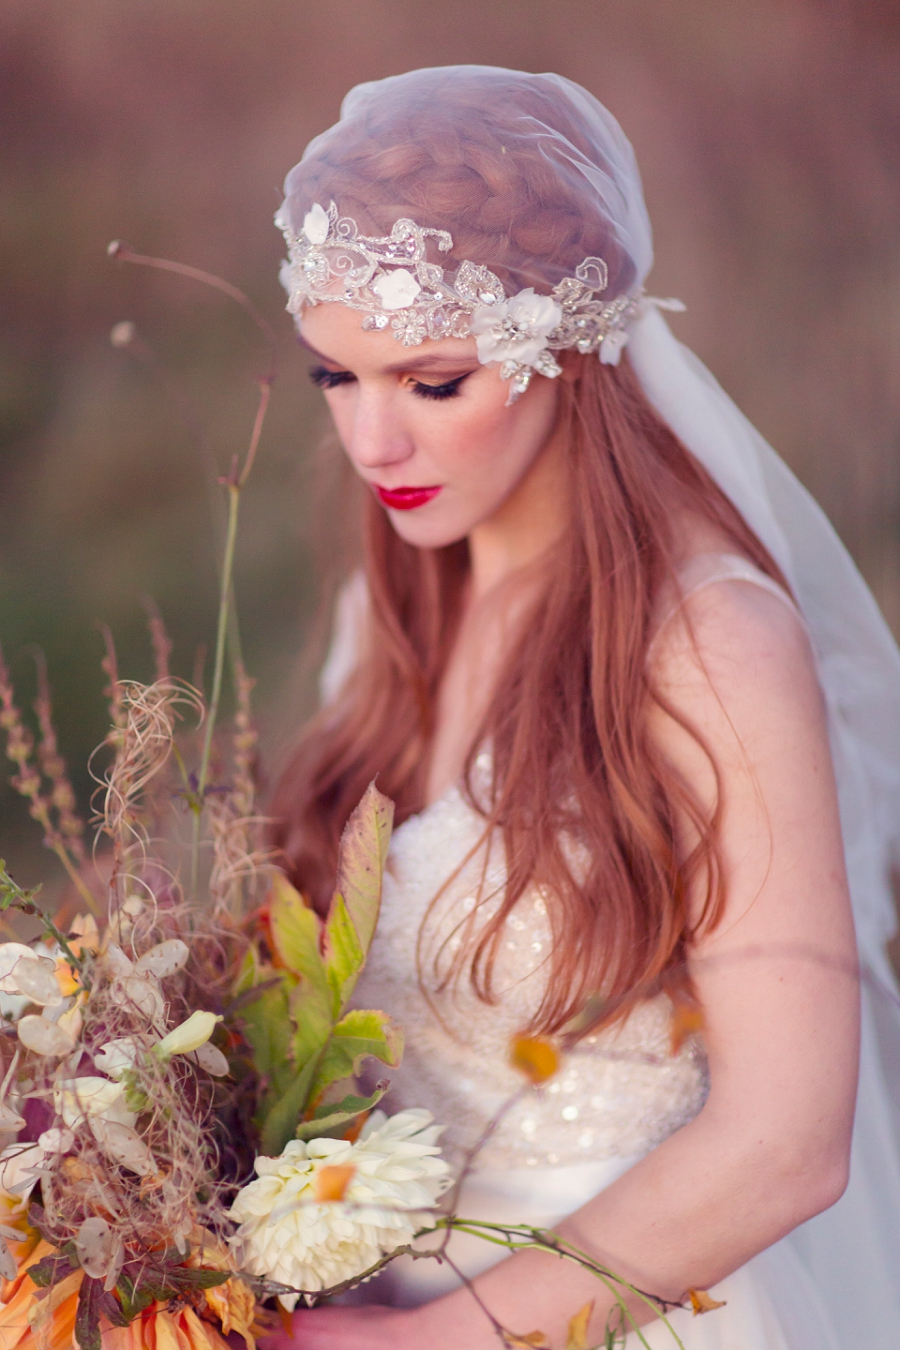 A Wild & Magical Bridal Shoot in Scotland with Feathers and Warm Colour Palette